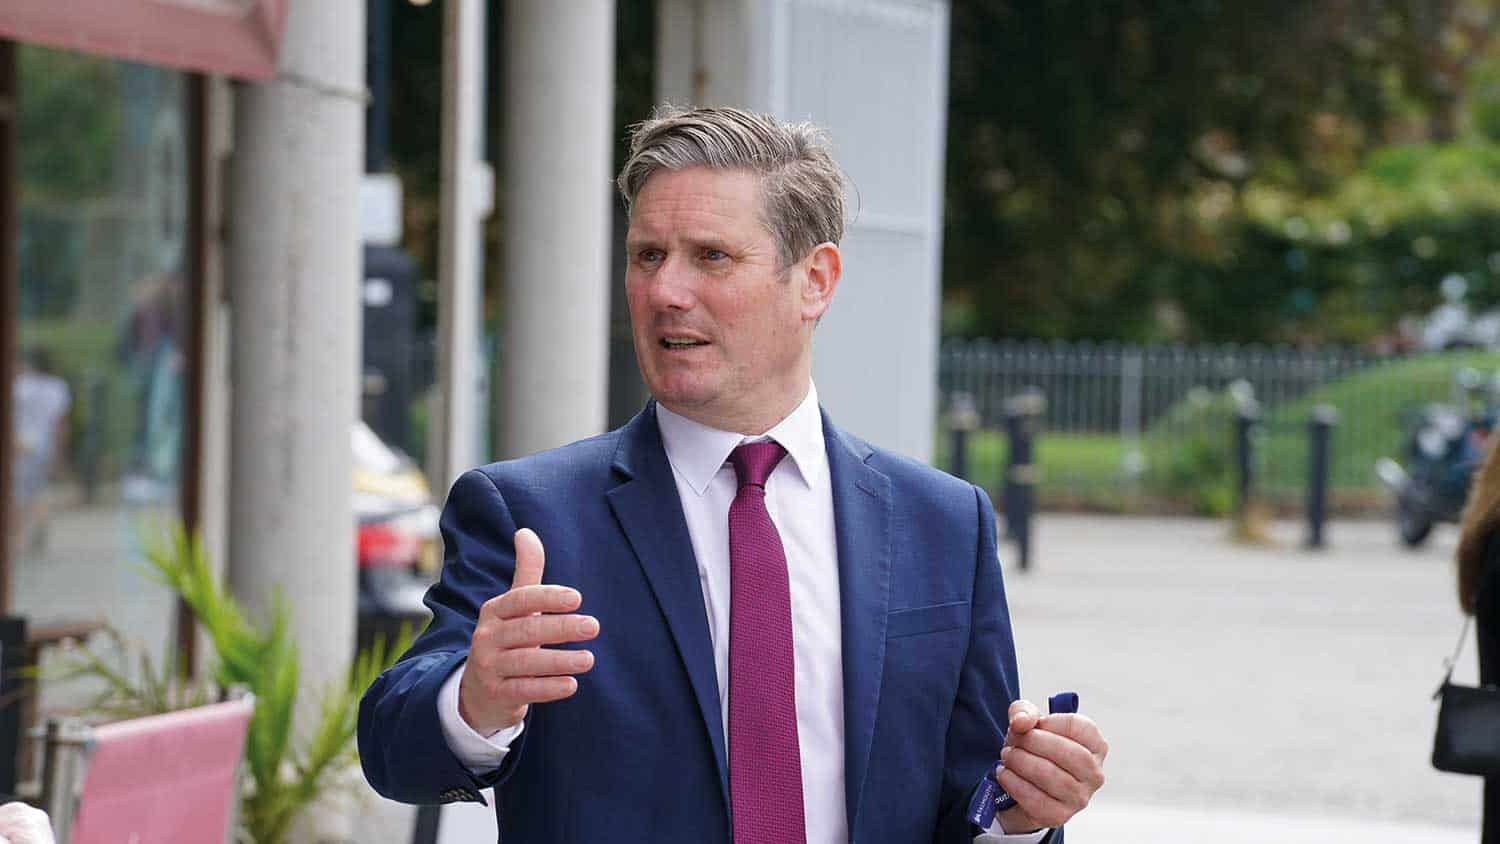 The Labour leader Sir Keir Starmer animate iwth his hands talking to someone off camera